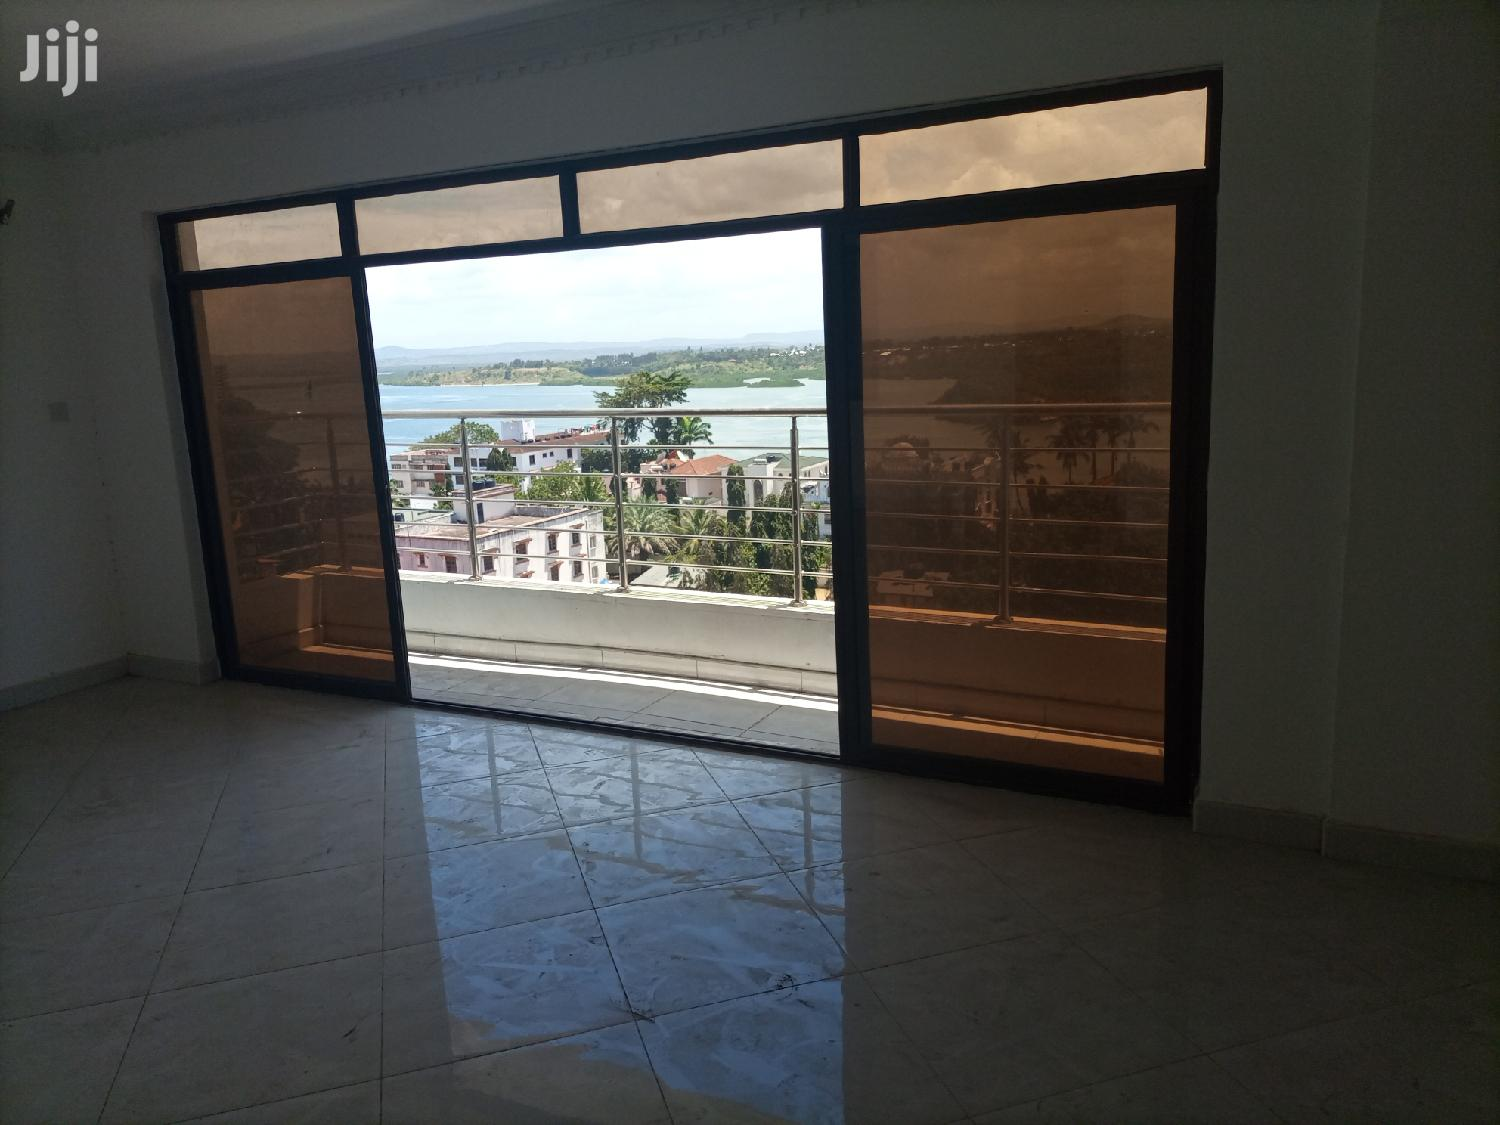 Tudor For Sale:4br Seaview Brand New All Ensuite Flat. | Houses & Apartments For Sale for sale in Tudor, Mombasa, Kenya